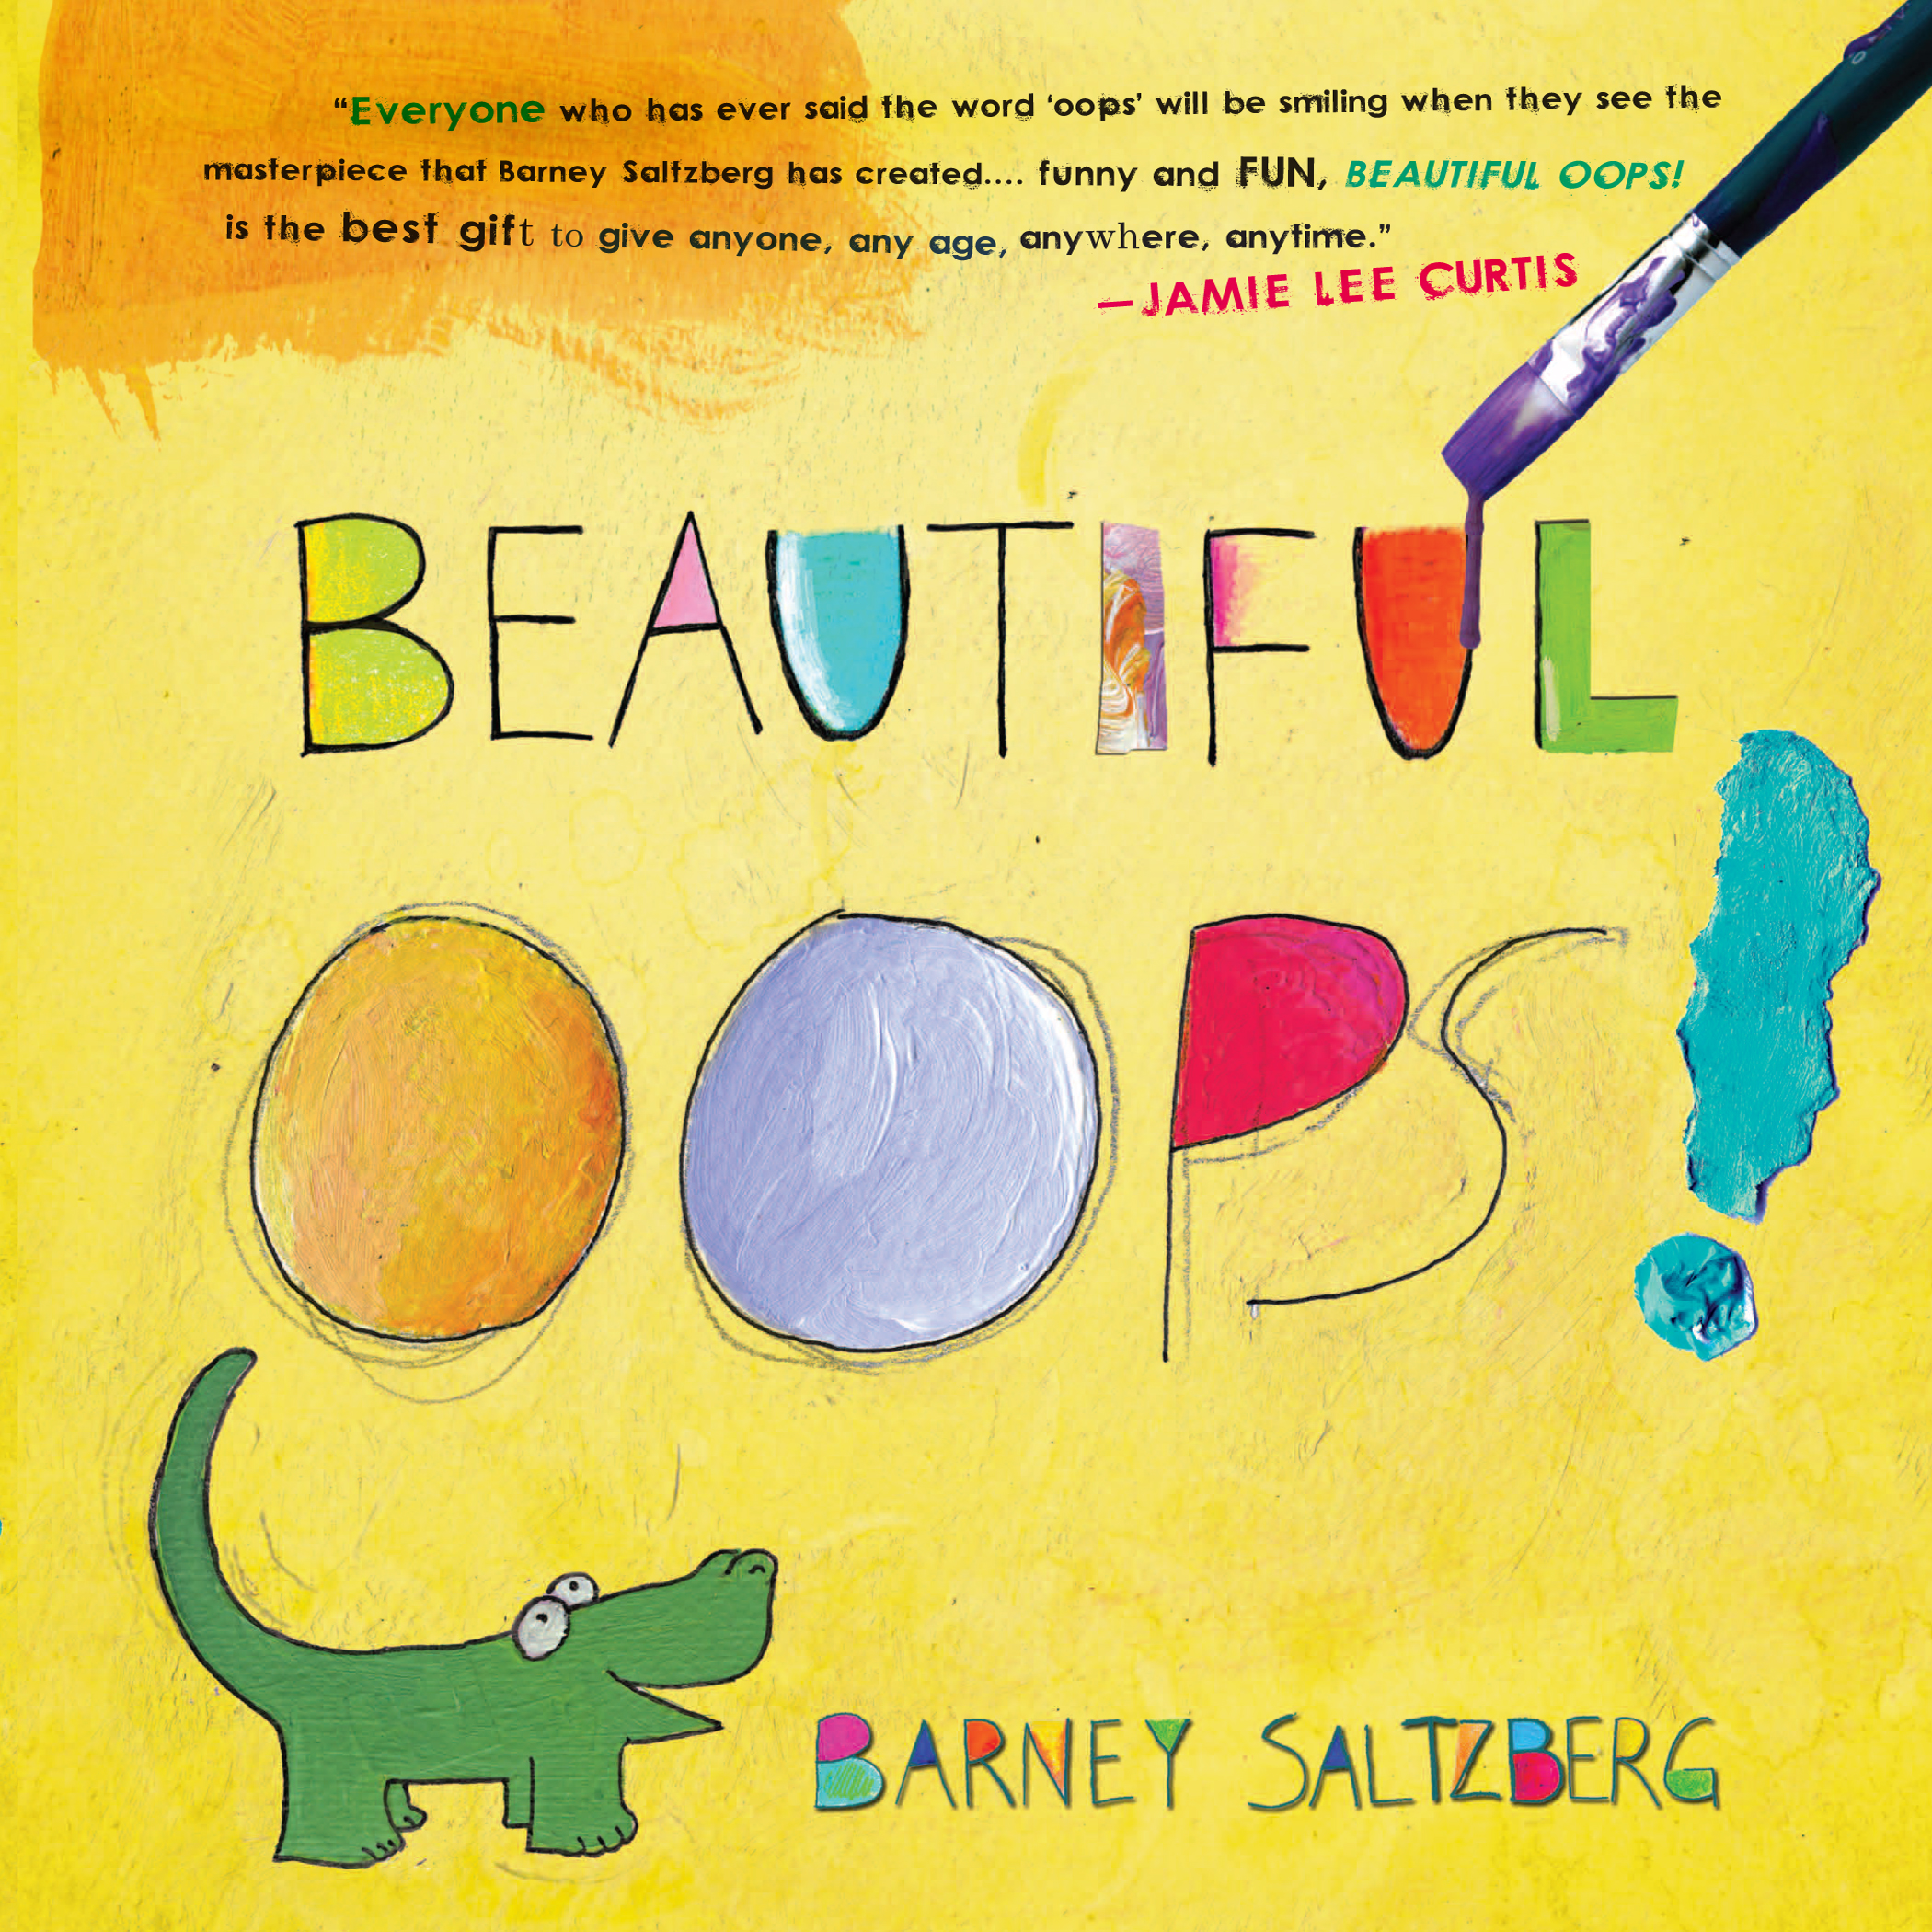 beautful oops, kids books, barney saltzberg